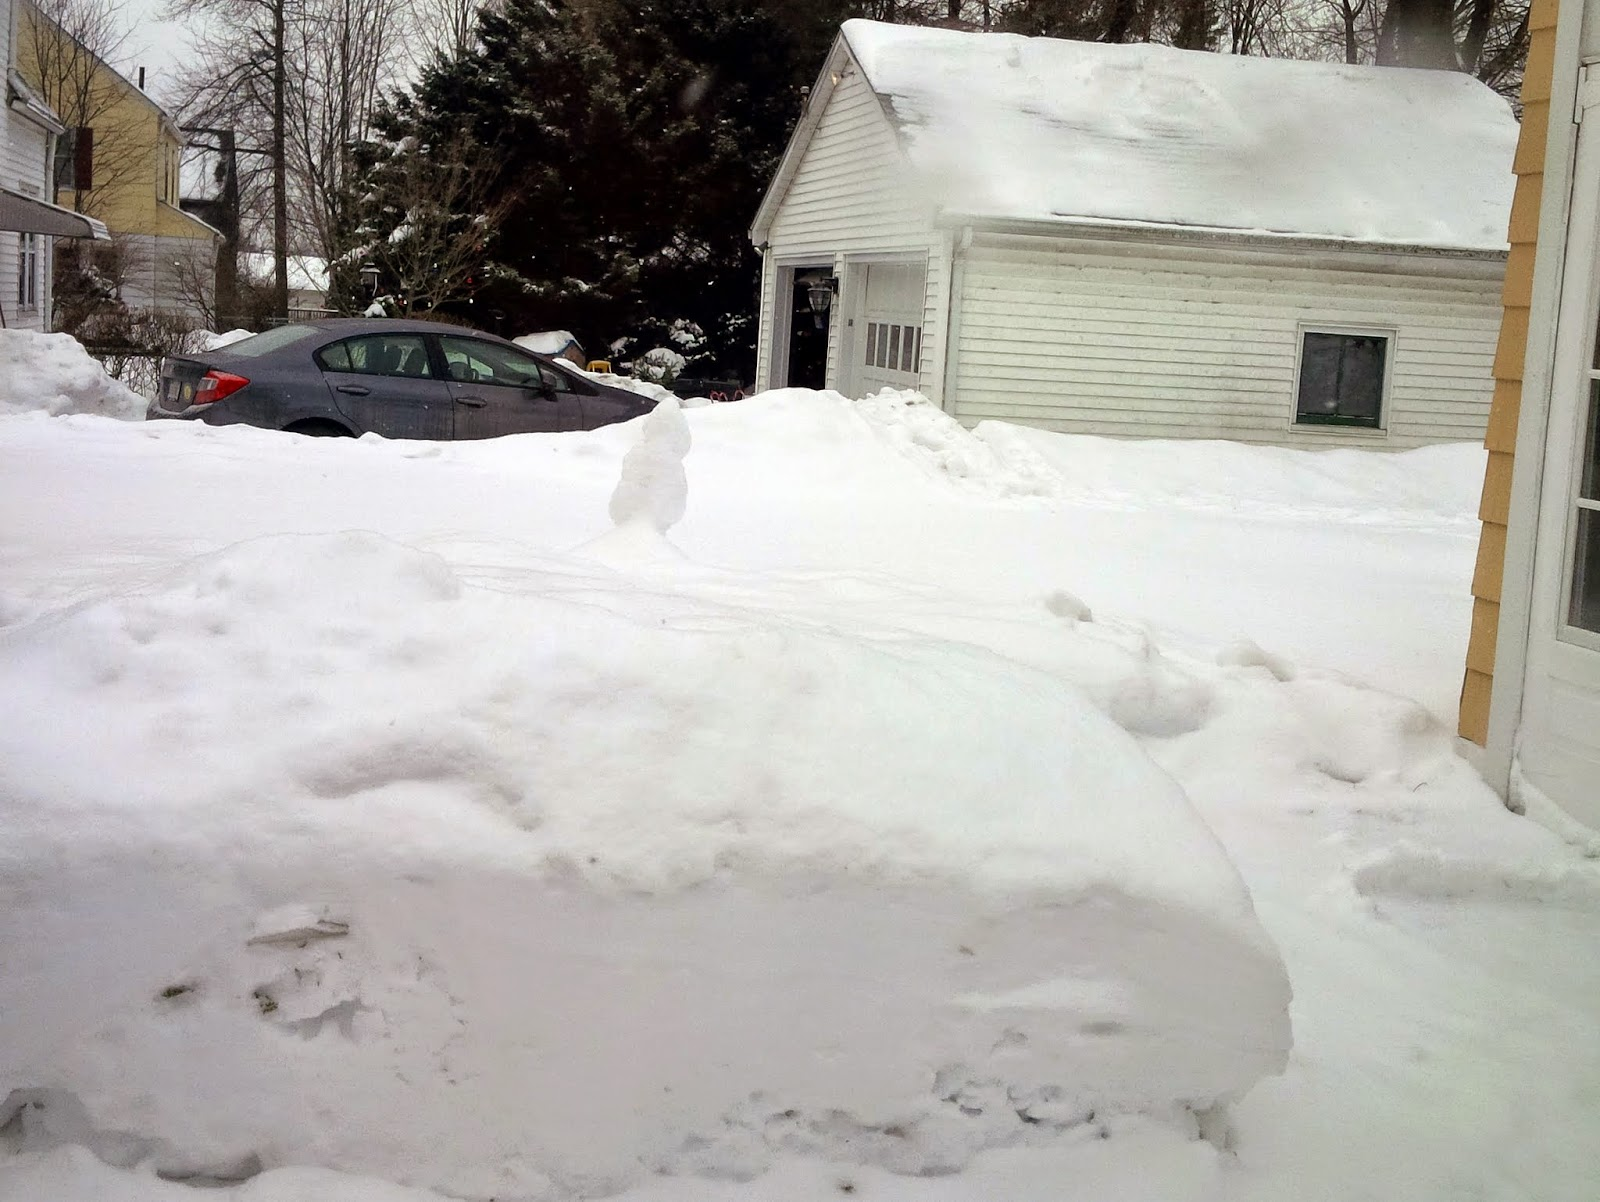 Snow in New England. Not pretty.